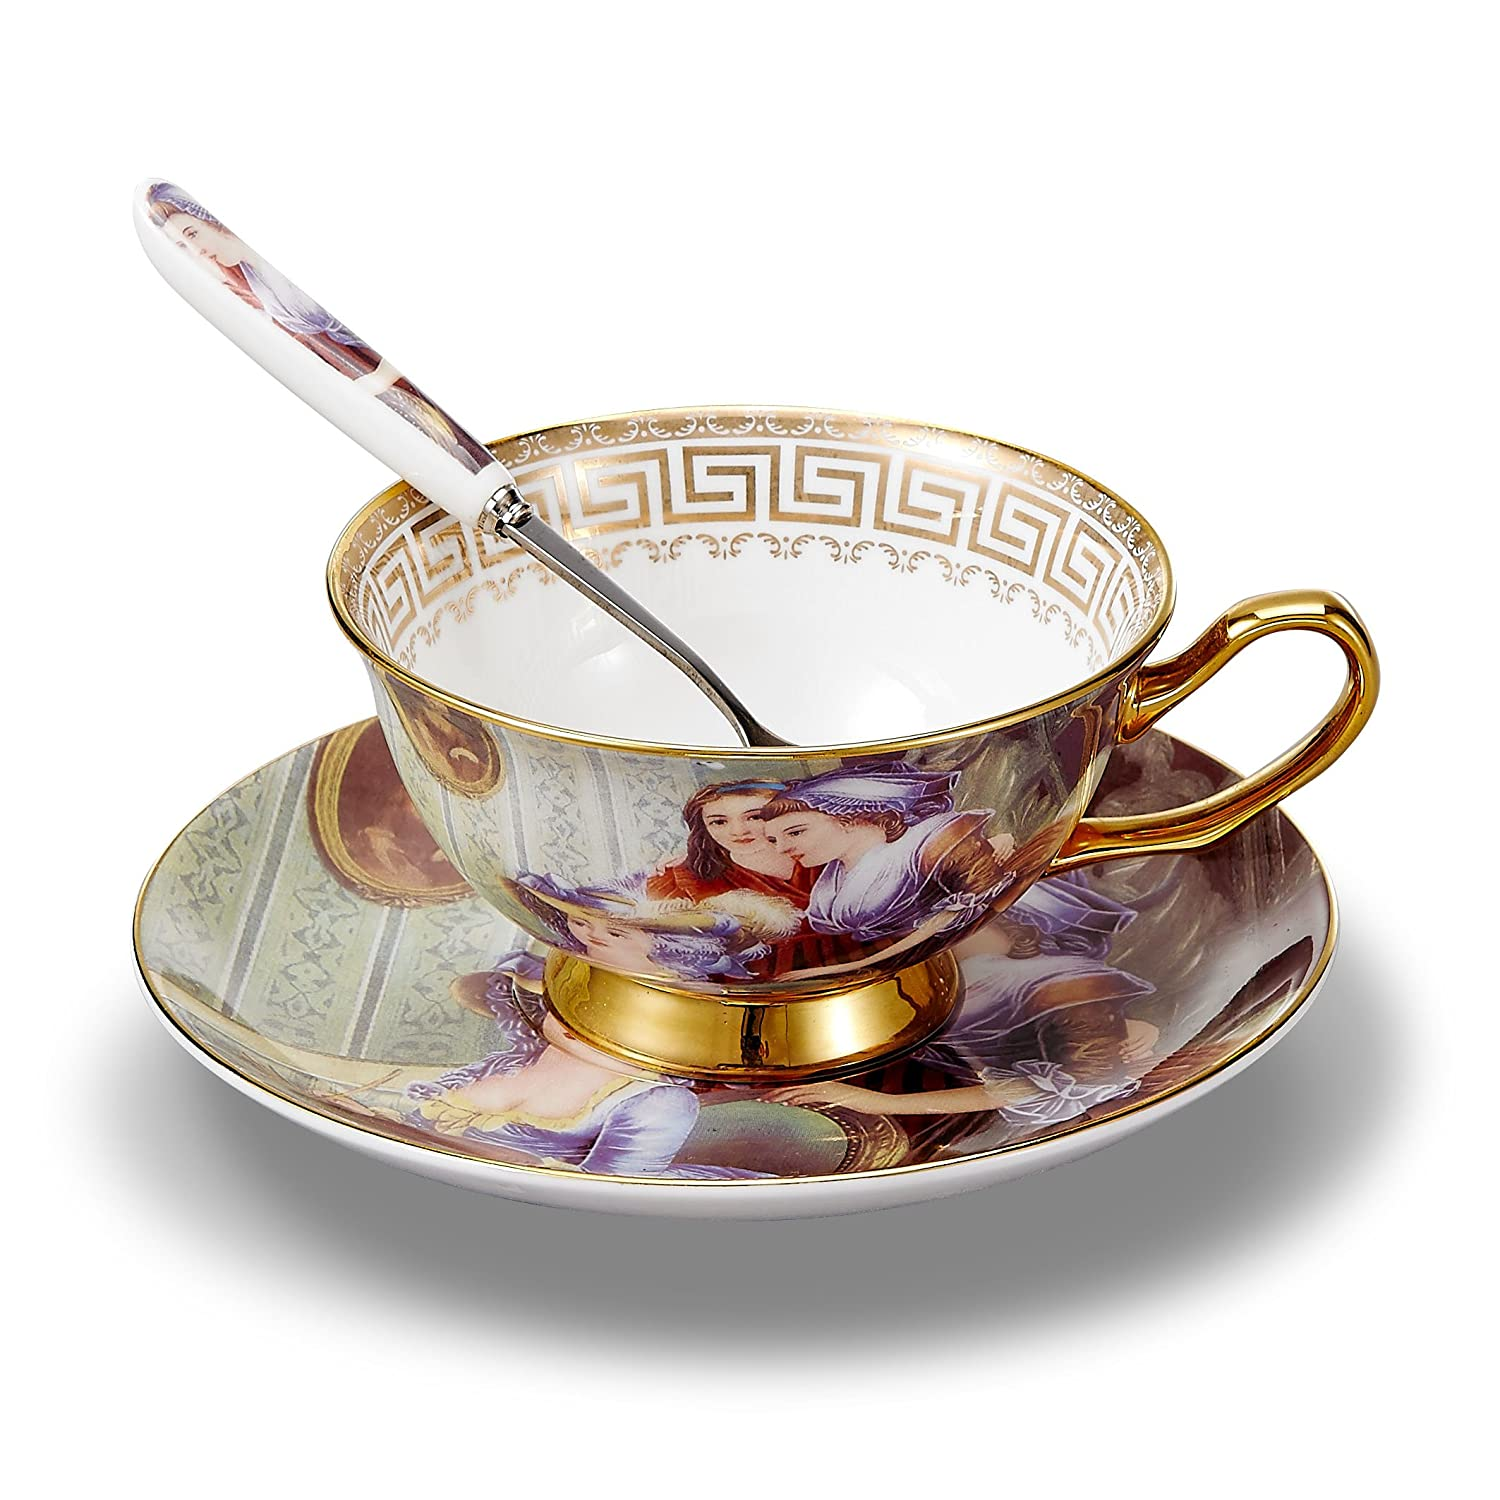 Panbado Tasses /à Th/é Service /à Caf/é 200ml avec Soucoupe Cuill/ère en Porcelaine Style Palais Royal Antique Bone China Teacup 1 Set Tasse /à Th/é Sans Porte-tasse